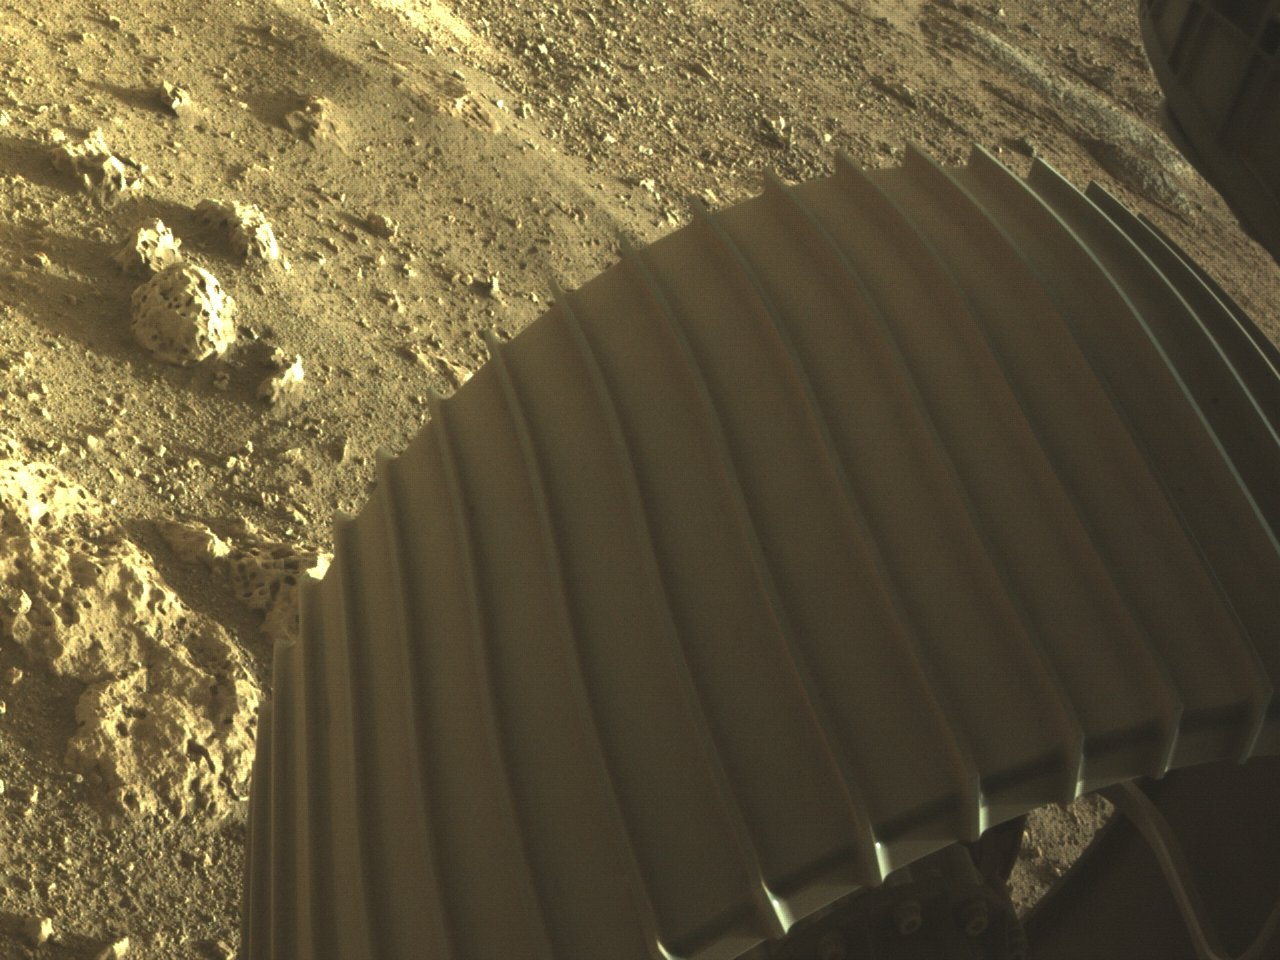 Photo of the Mars rover Perseverance's wheel and rocks at first glance.